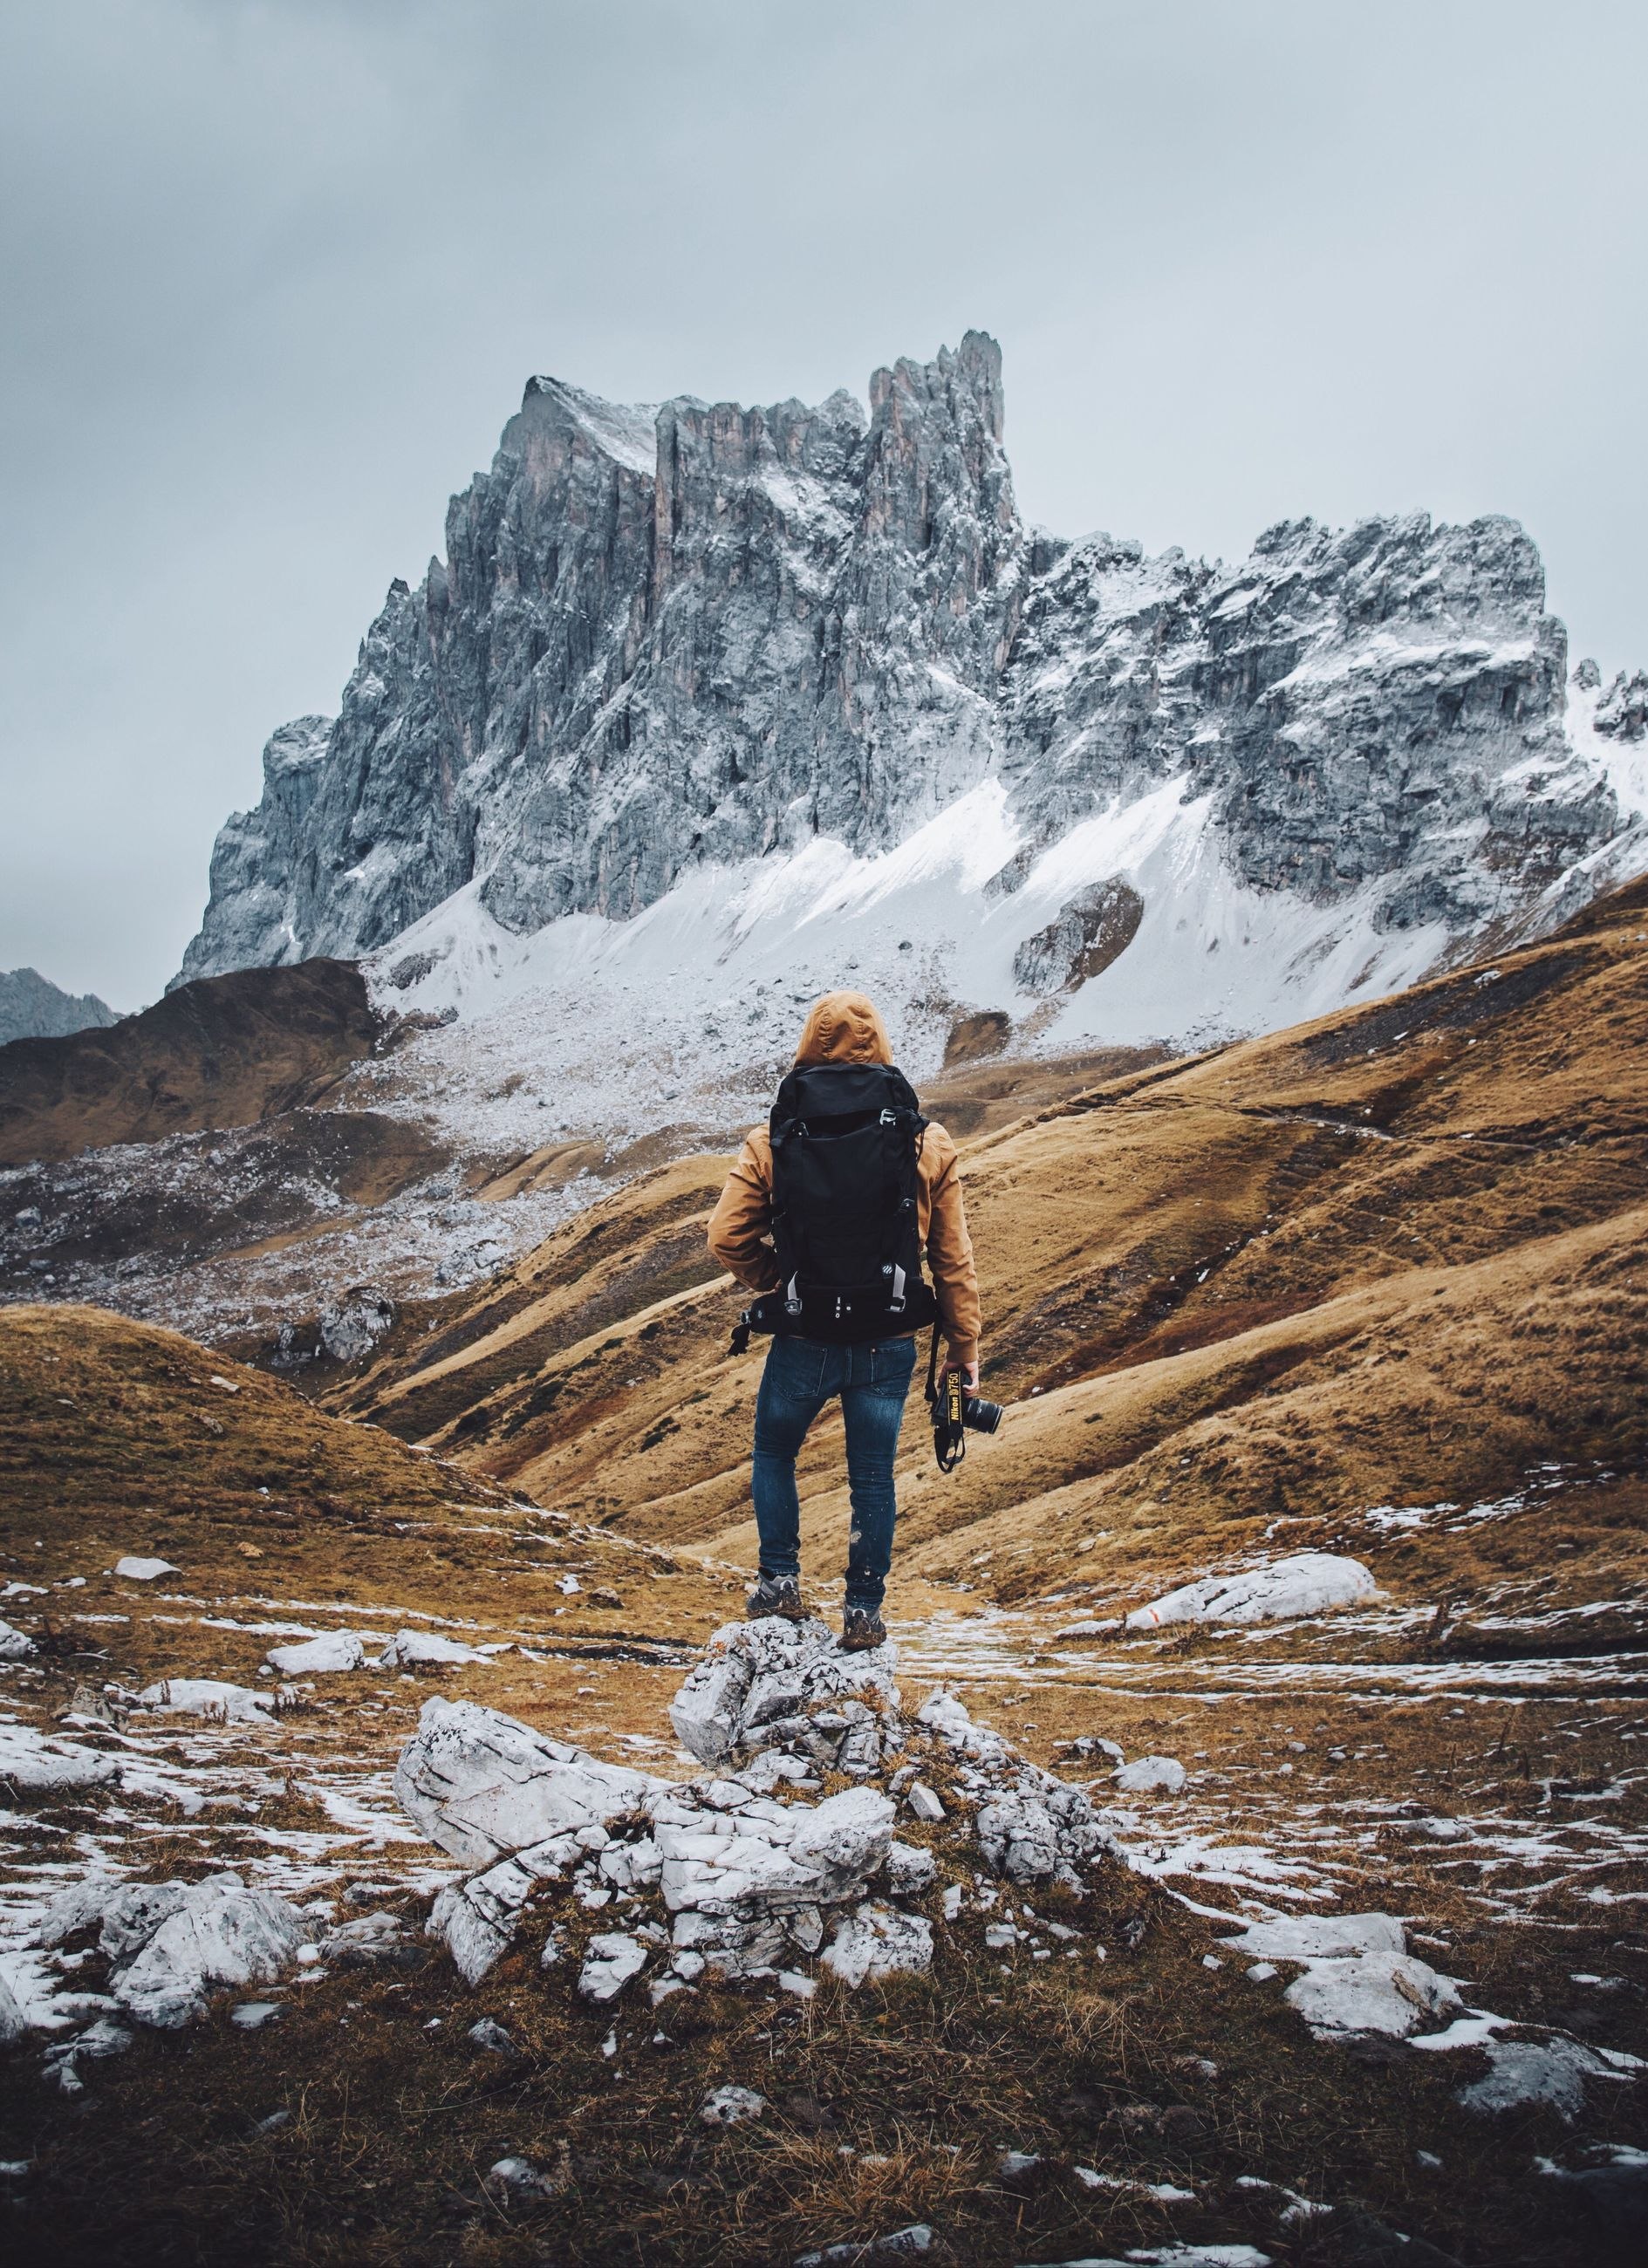 real people, nature, sky, lifestyles, rear view, one person, outdoors, winter, snow, mountain, men, cold temperature, leisure activity, adventure, beauty in nature, landscape, scenics, day, cloud - sky